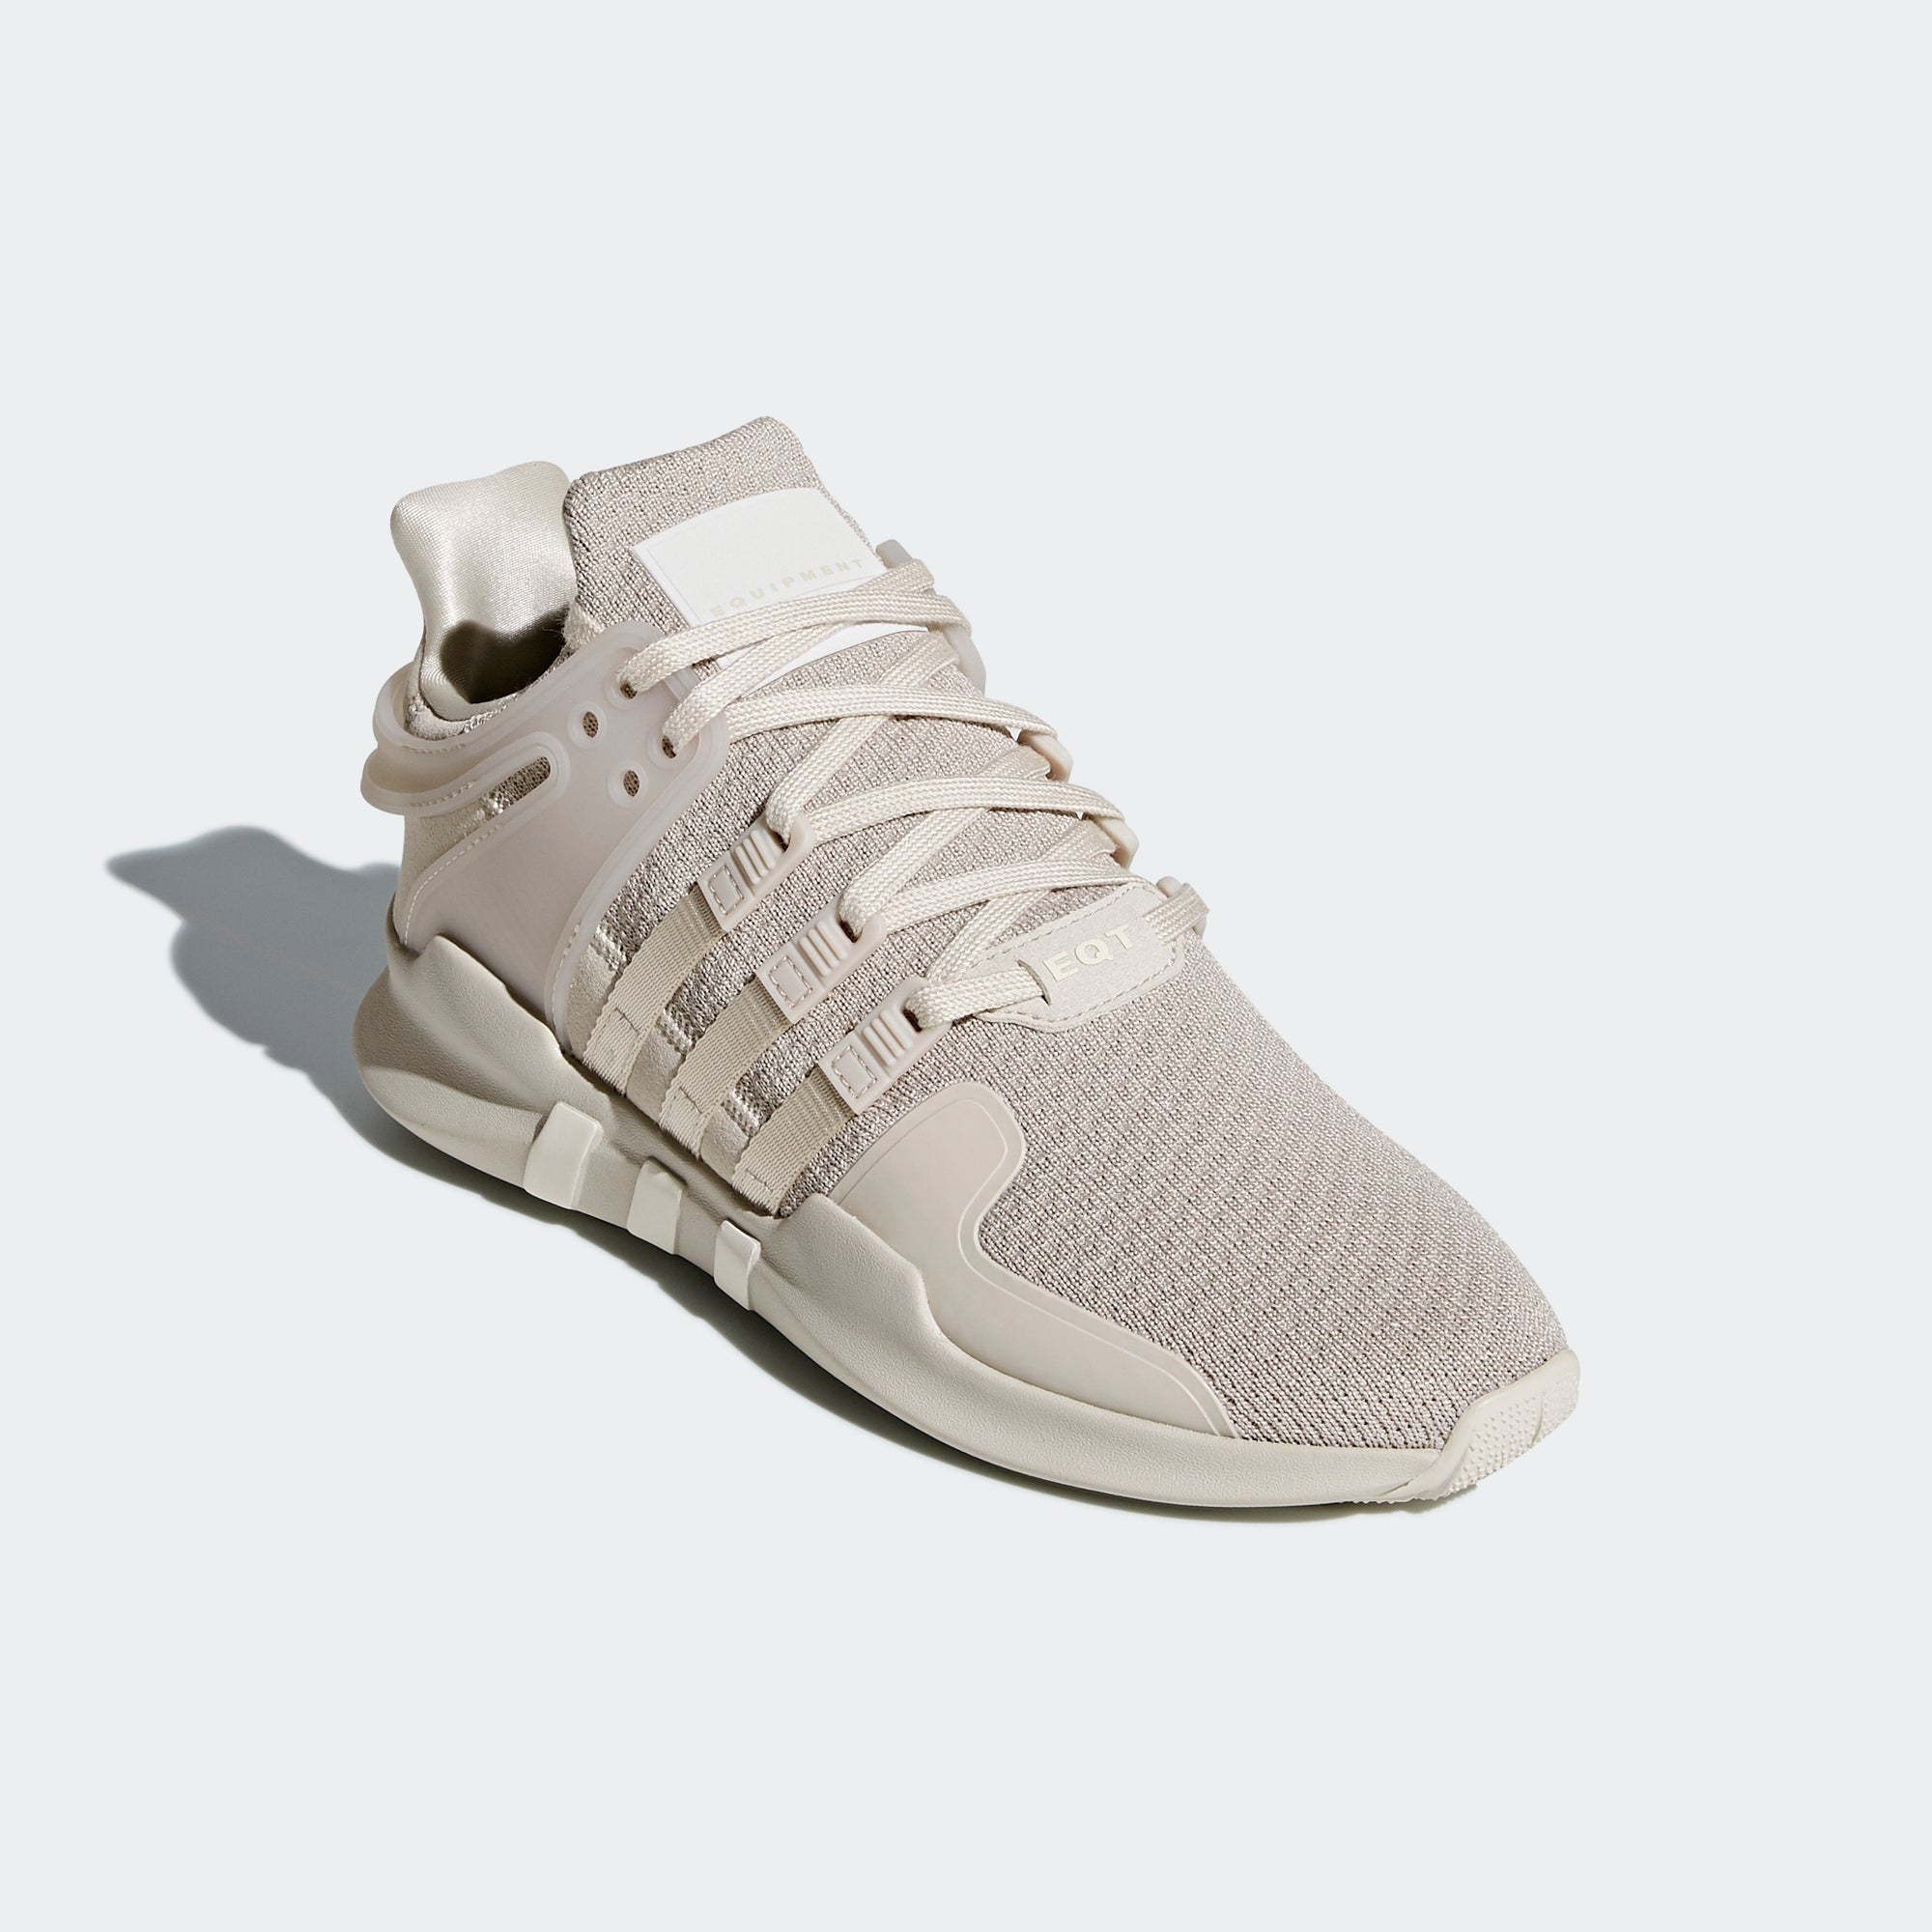 brand new d8602 f5746 adidas EQT Support ADV Shoes Clear Brown B37543 | Chicago ...